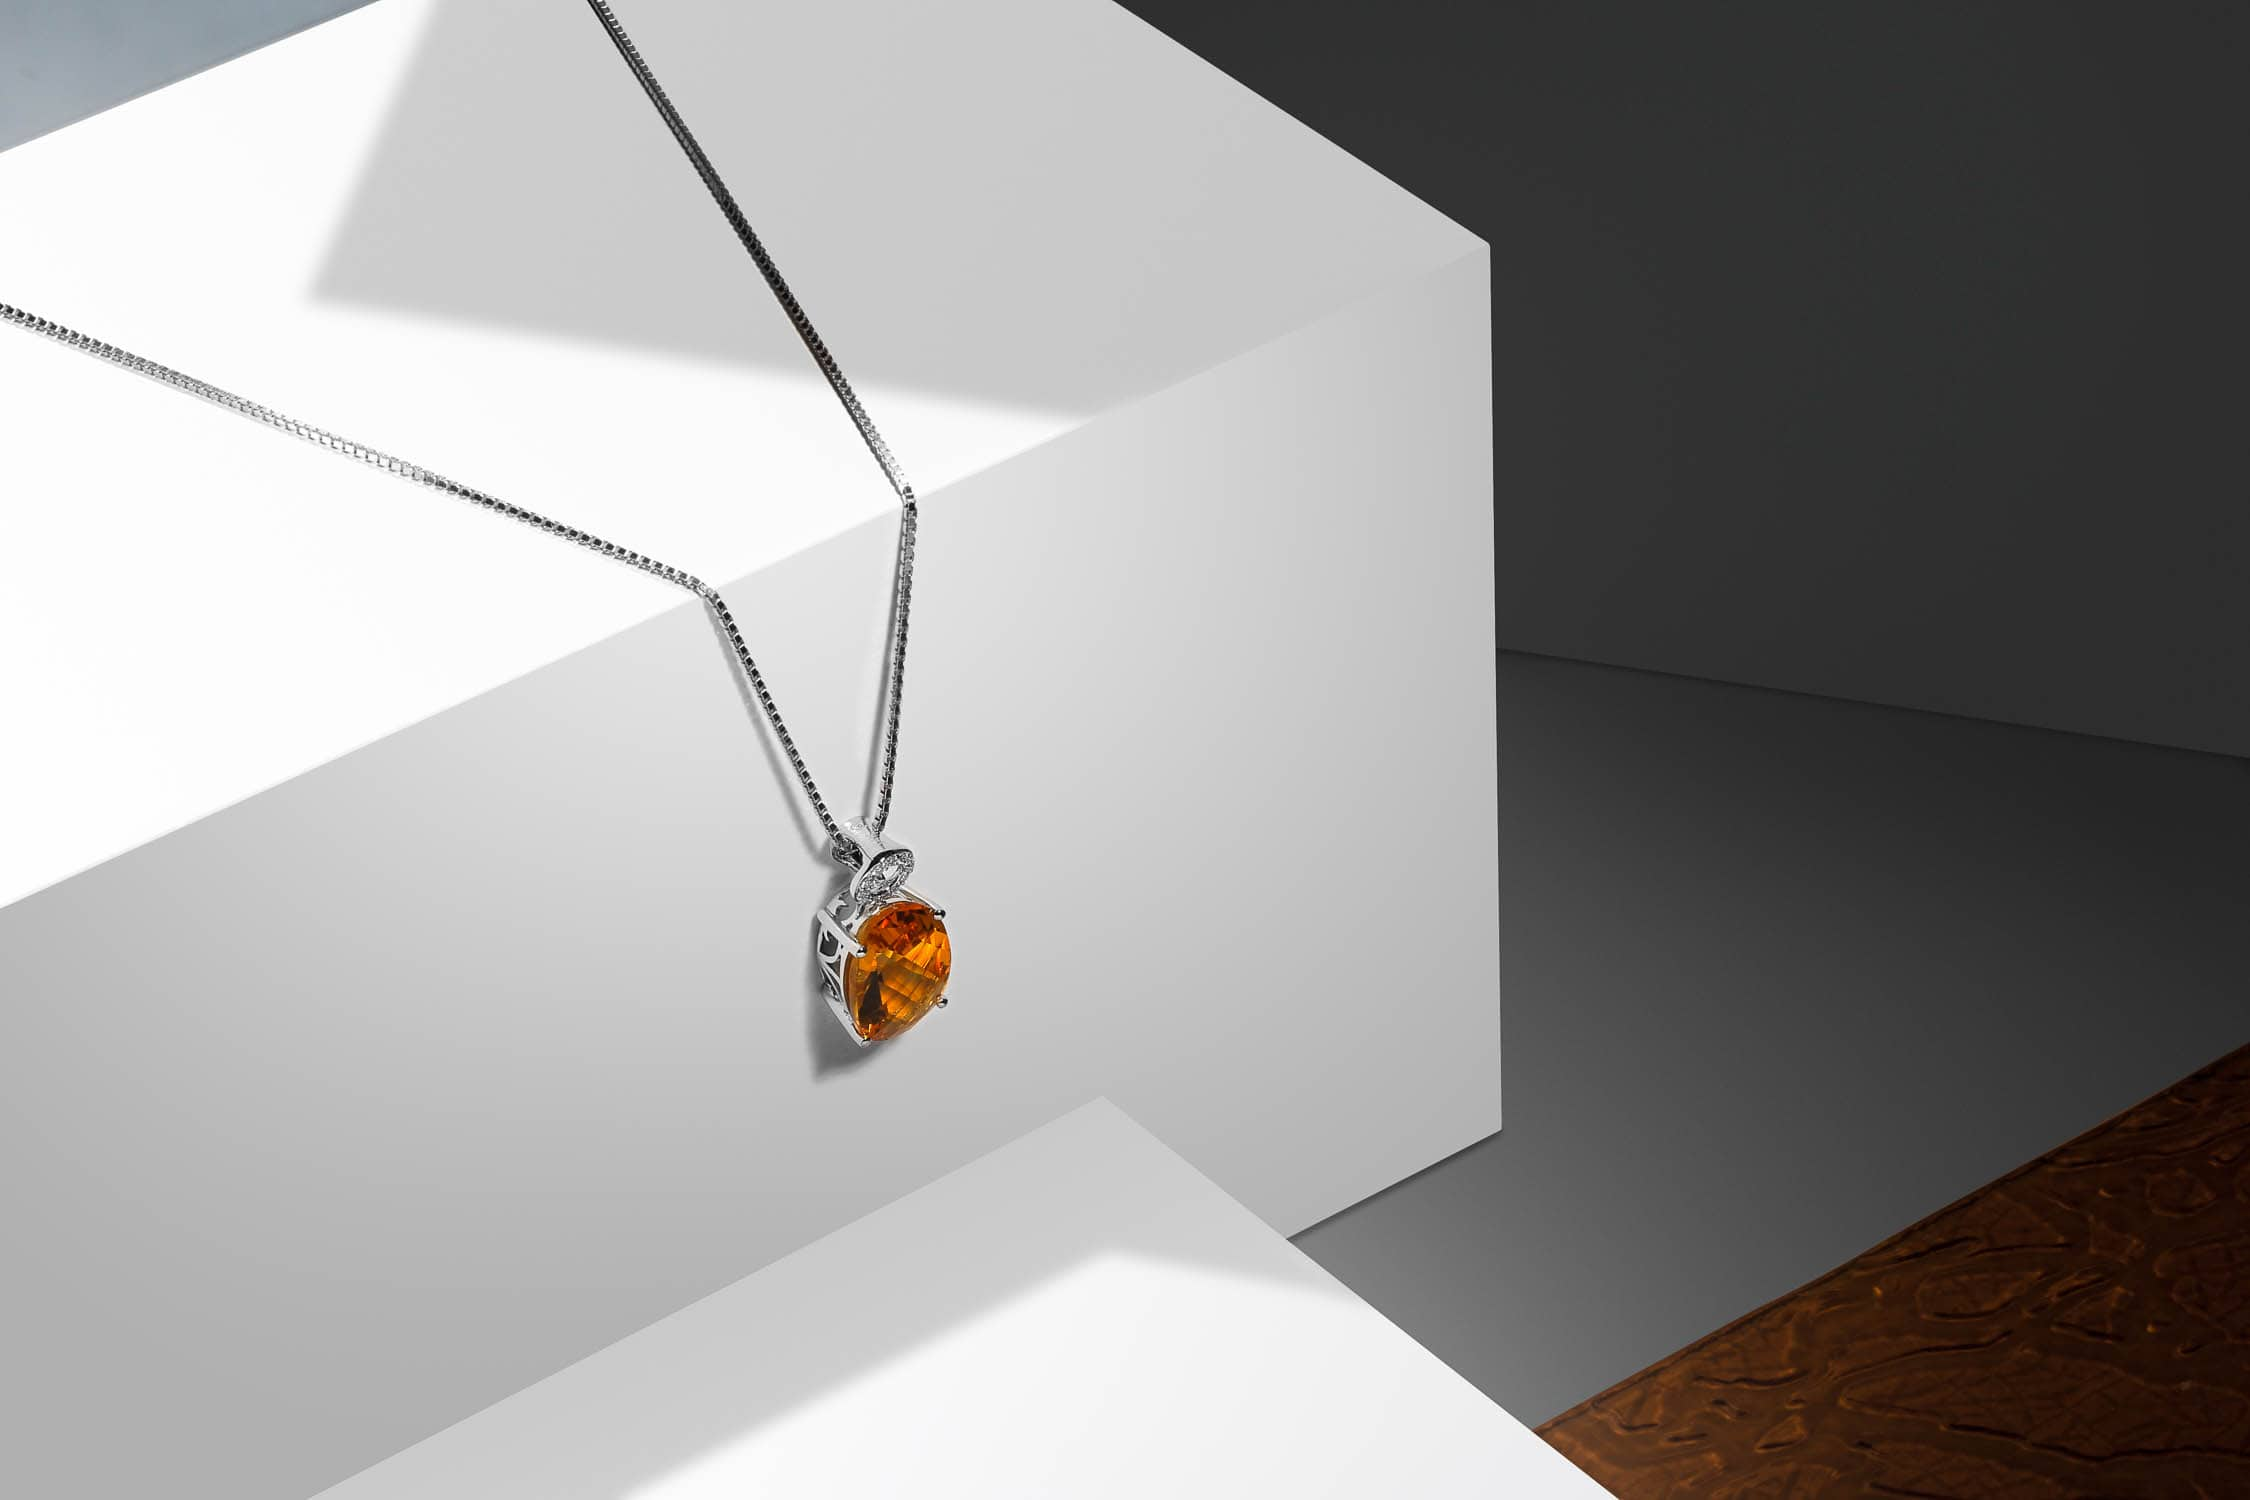 Jewelry photography of Citrine Pendant Necklace